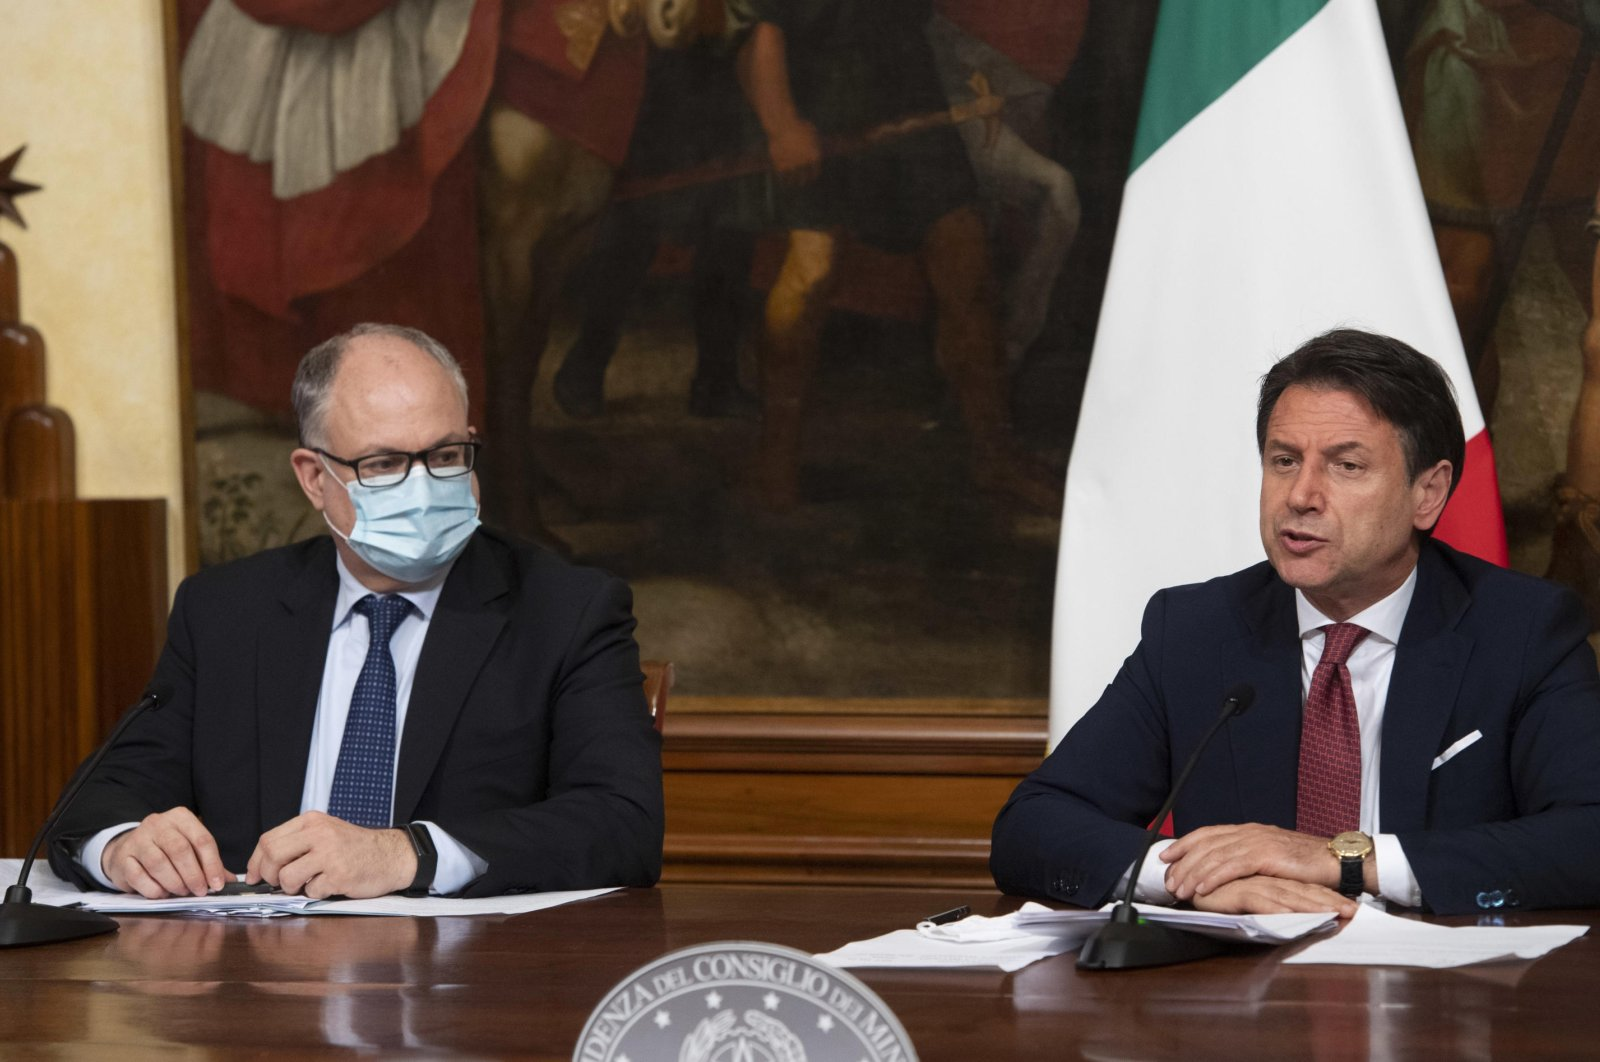 Italian Prime Minister, Giuseppe Conte (R), with Economy Minister Roberto Gualtieri (L), announces the latest set of measures under another emergency decree during the coronavirus pandemic in Rome, Italy on Aug. 7, 2020. (AP Photo)